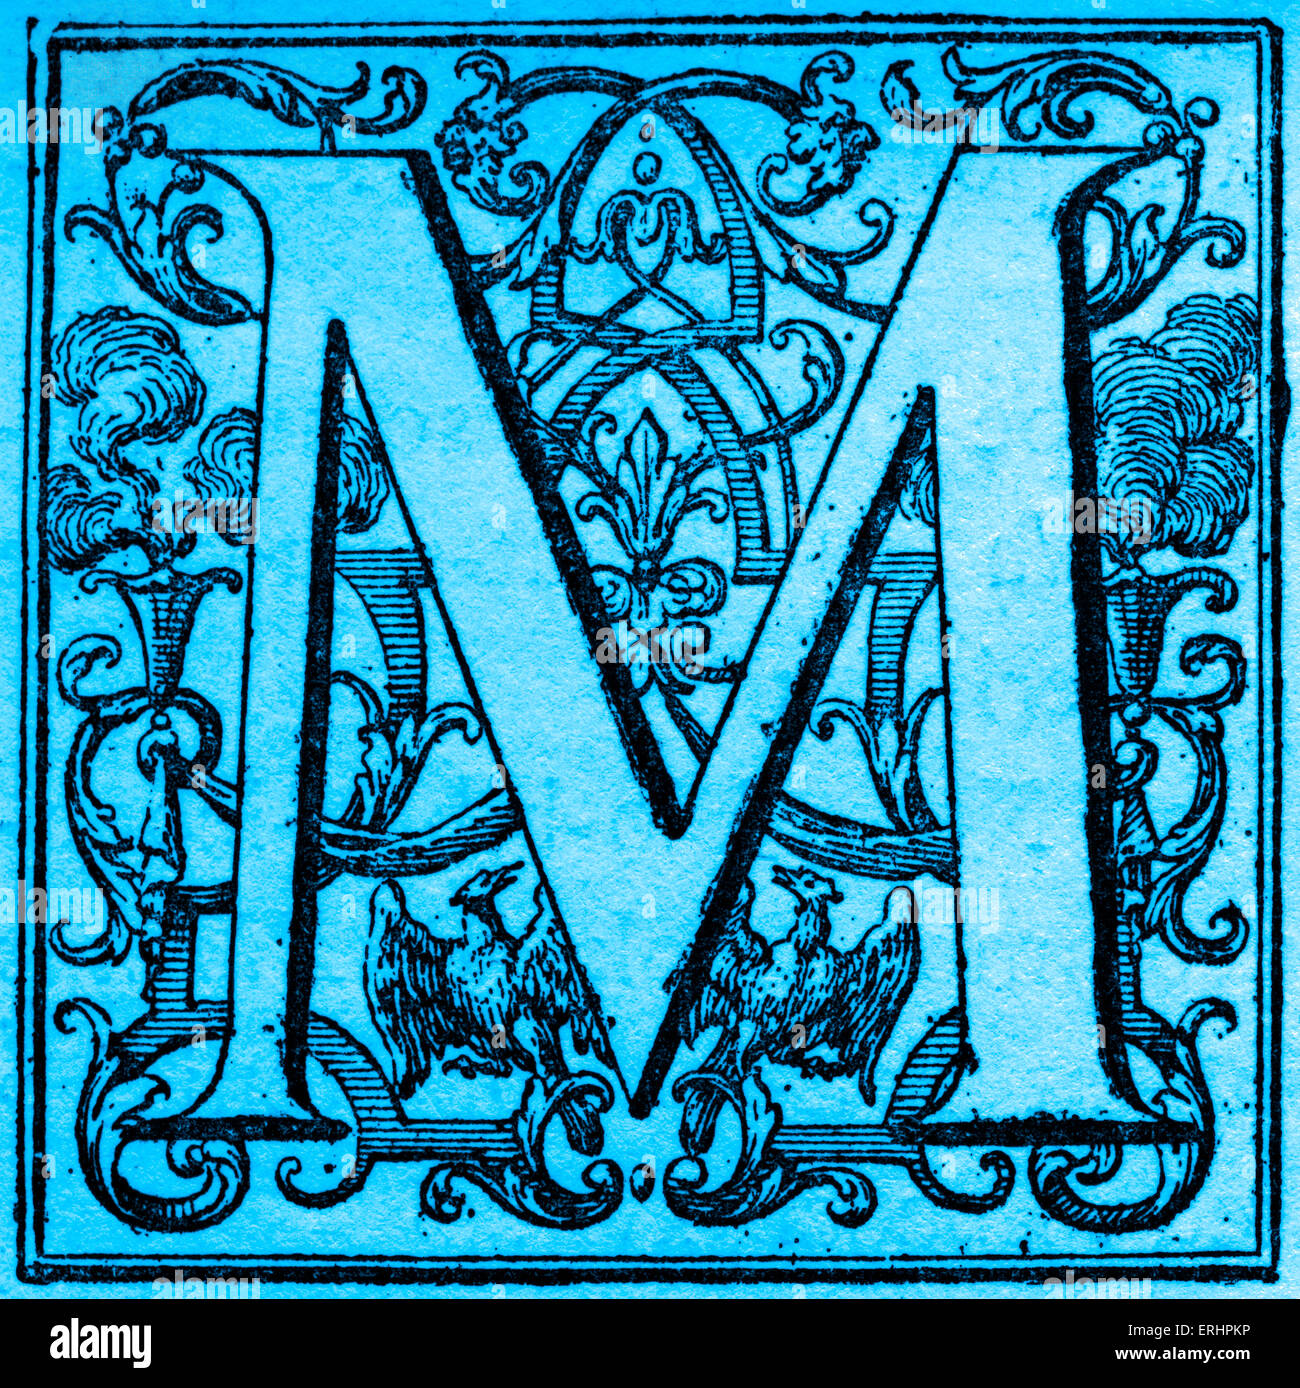 pd stock photo illuminated letter c from the of illuminated letter m stock photo 83369546 alamy 533